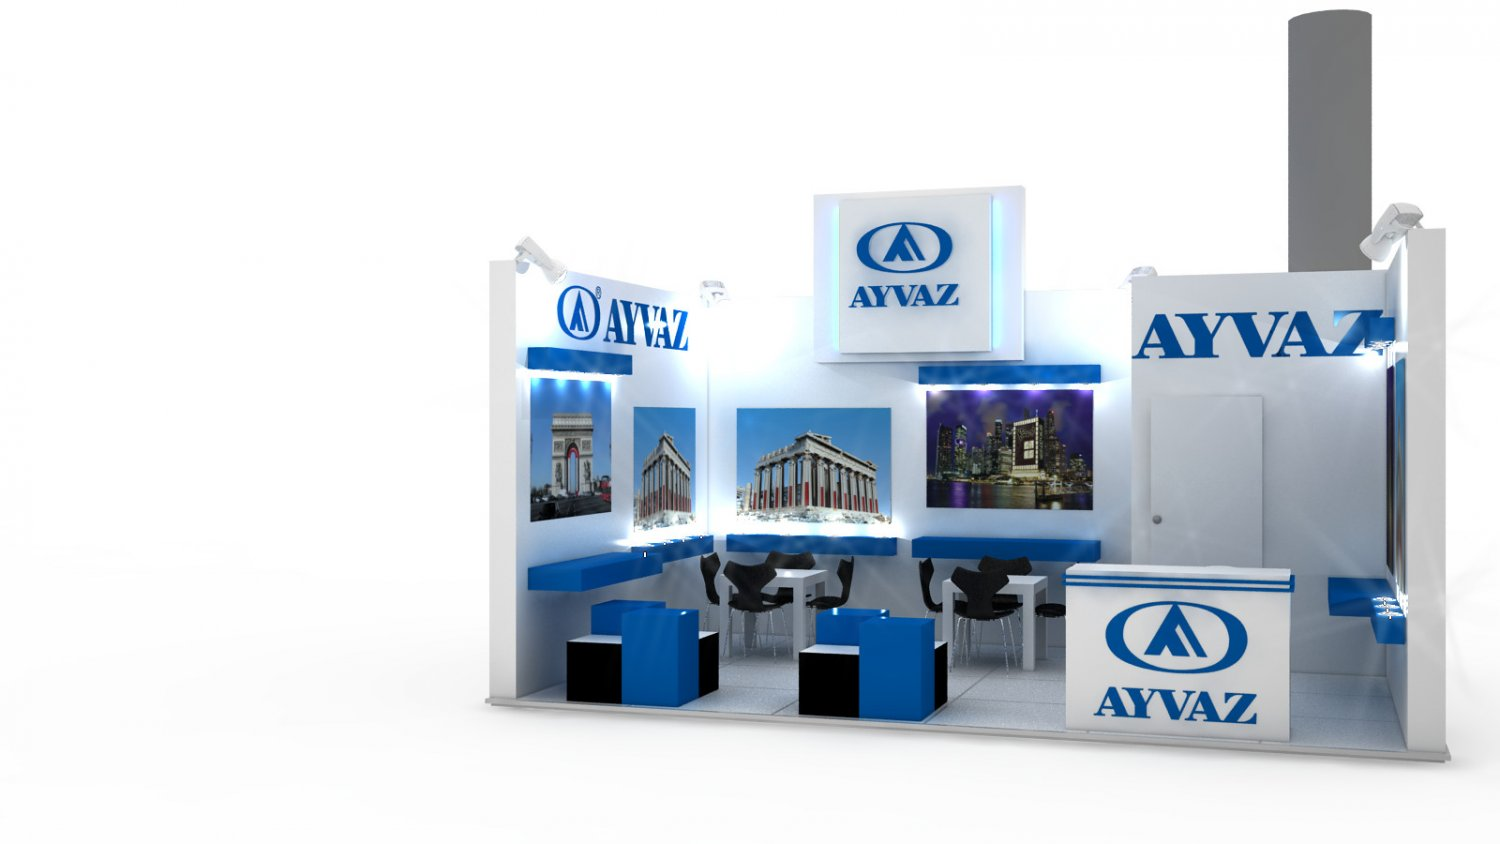 Exhibition Stand 3d Model Free : Ayvaz exhibition stand design d model in exhibit dexport